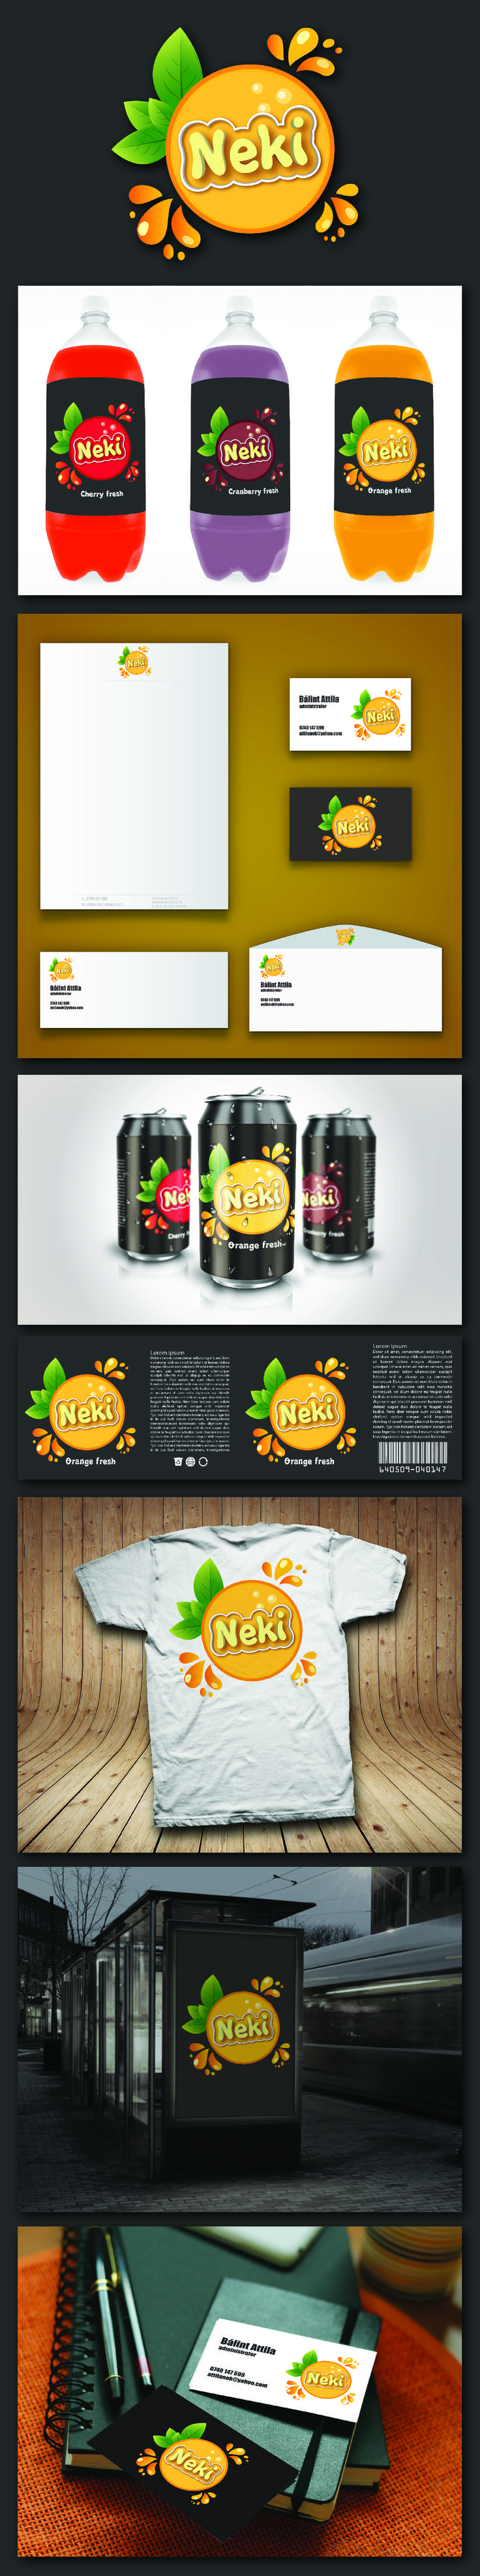 Brand identity for NEKI Drinks